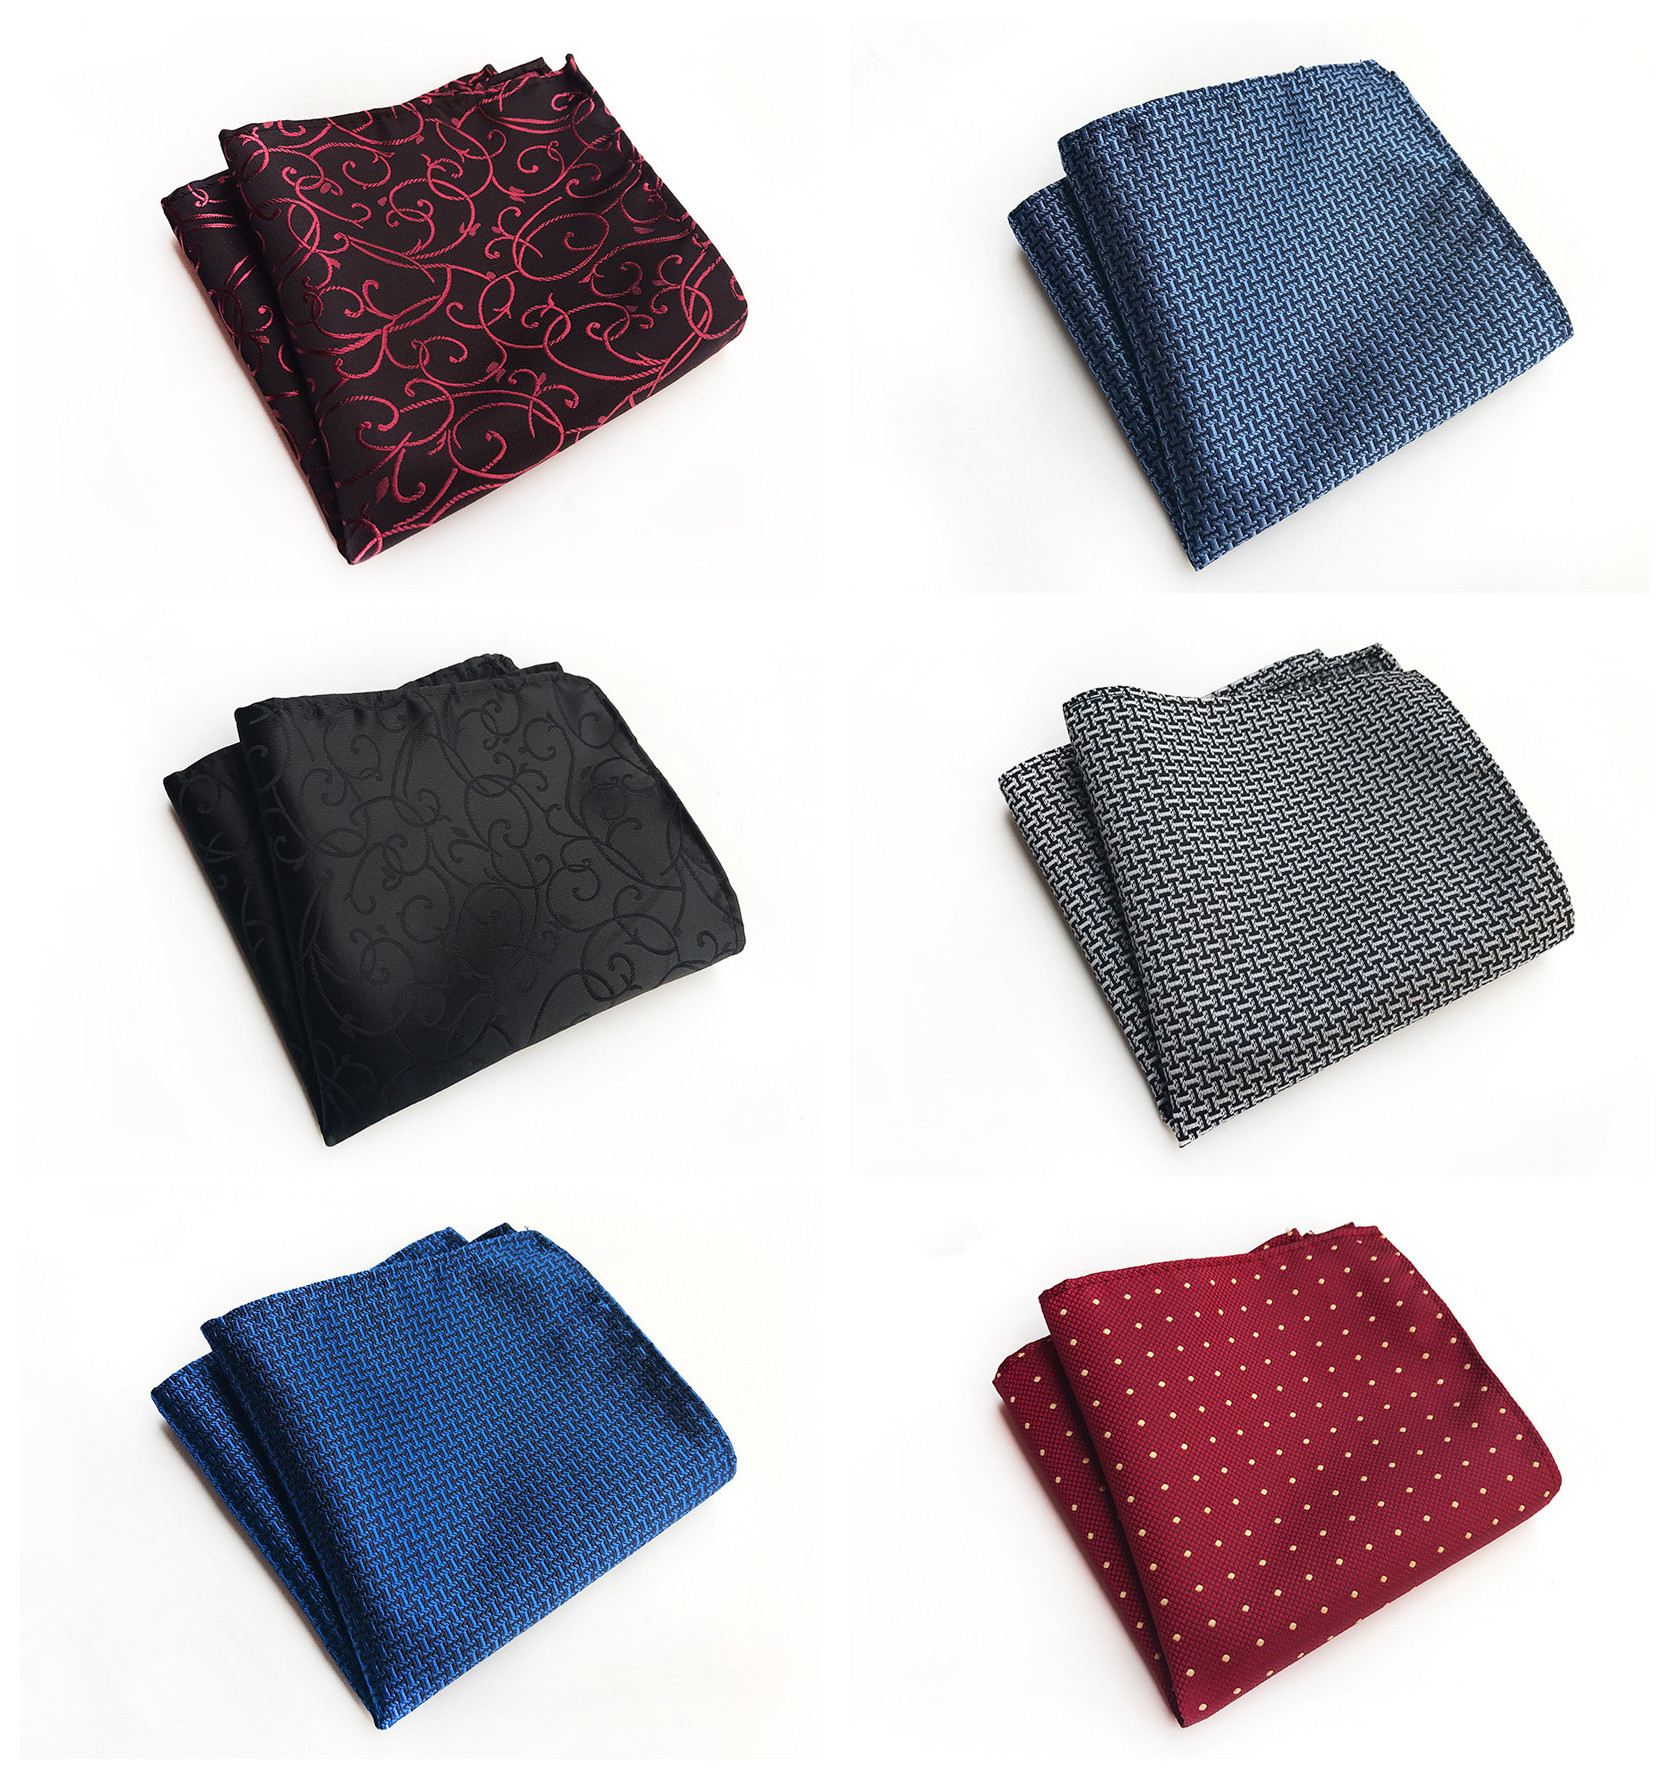 2020 Fashion Explosion Men's Business Suit Handkerchief Towel Fashion Unique Design Polyester Material Dress Pocket Towel